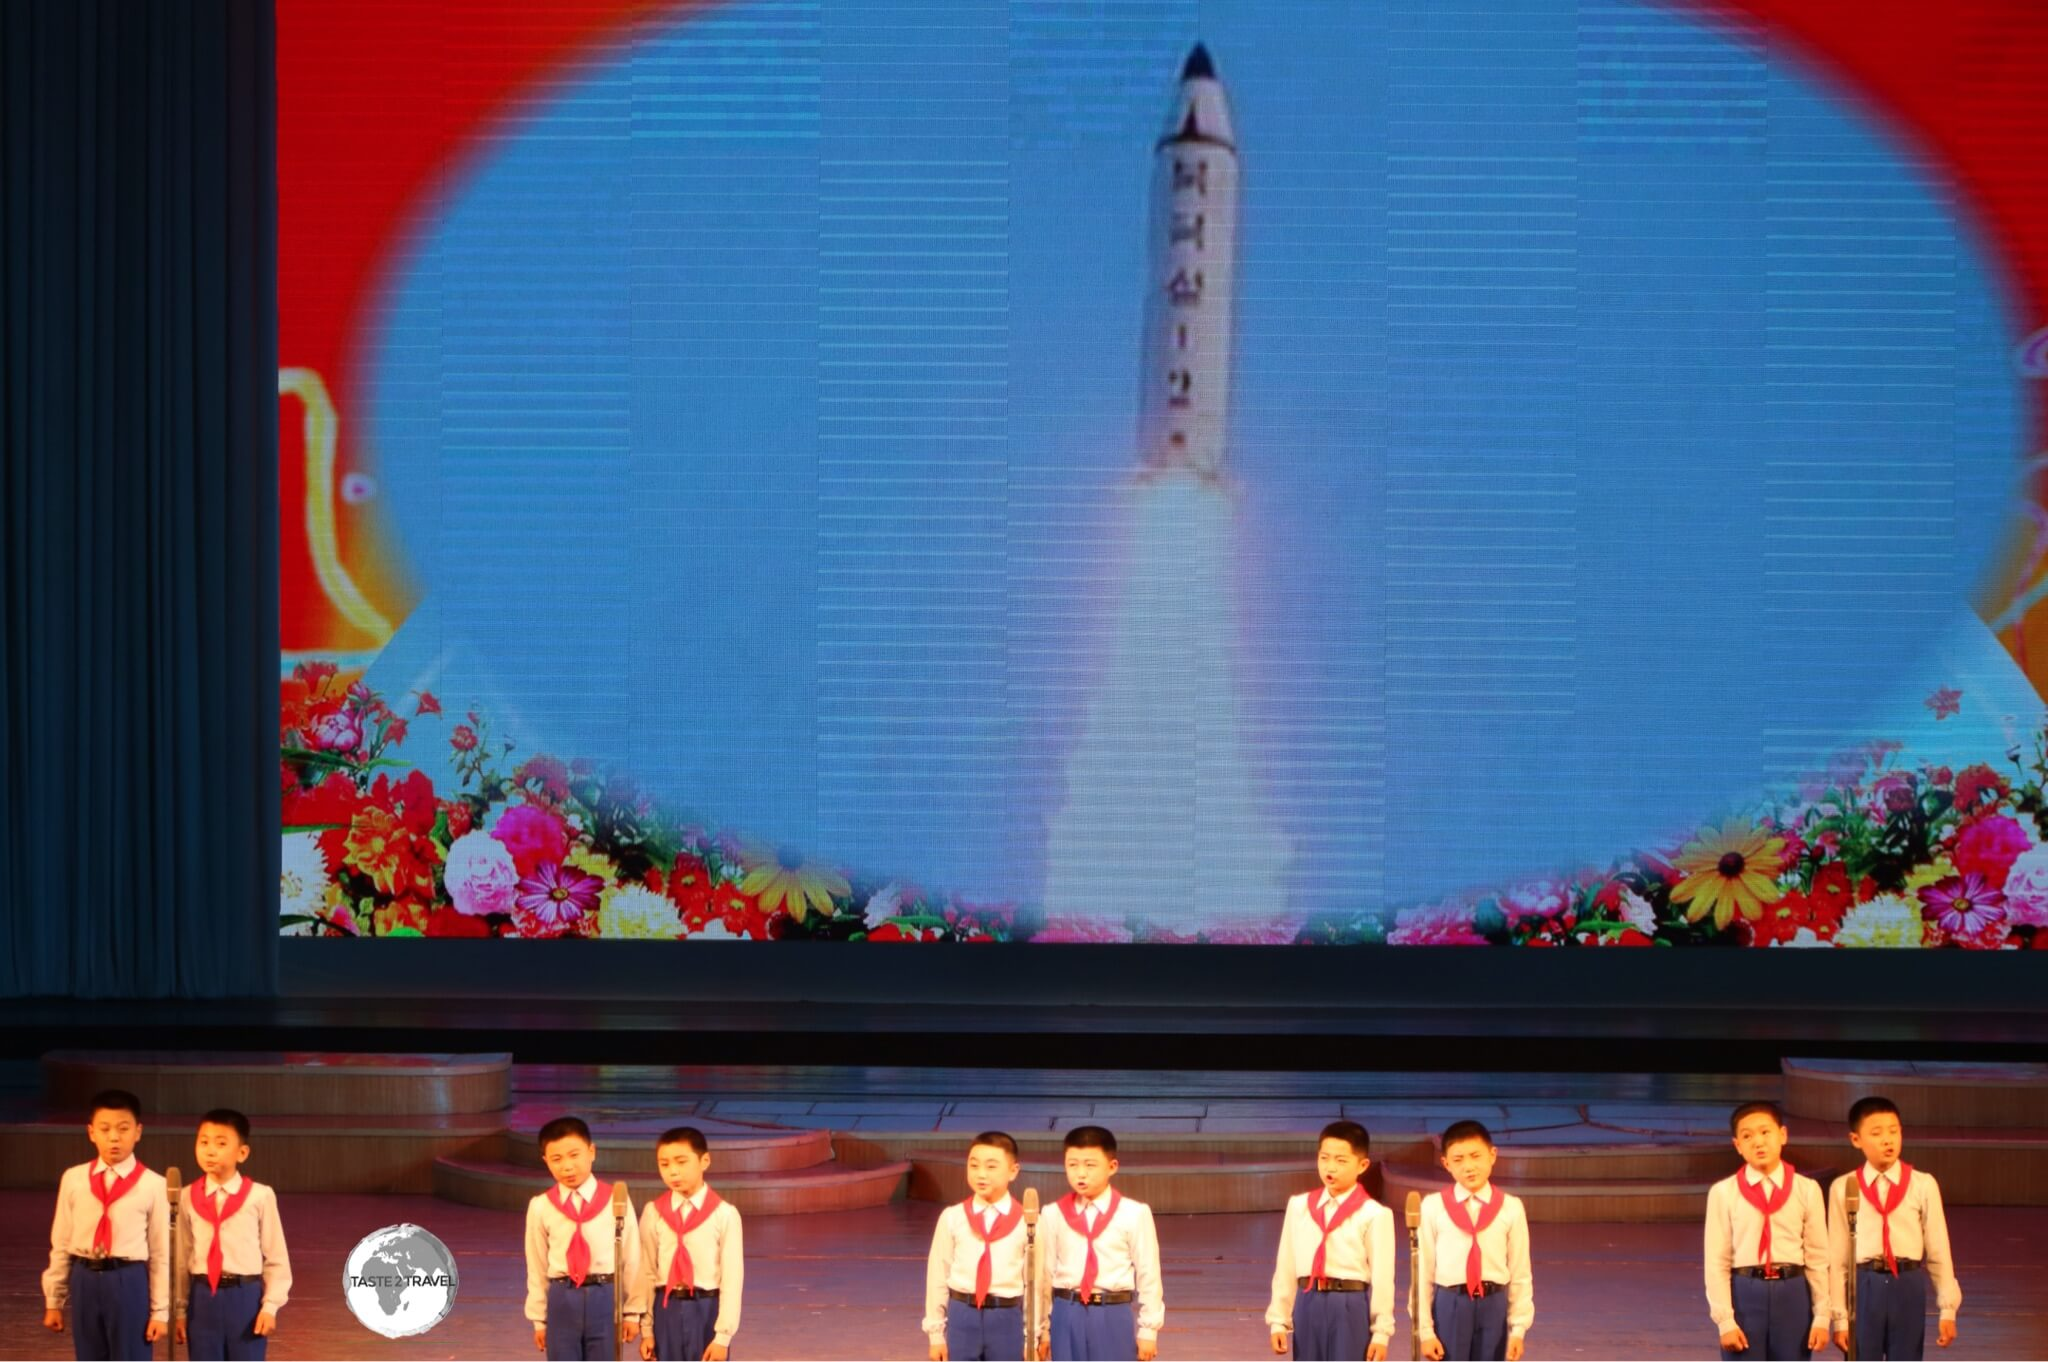 Nothing like a rocket blasting into space to enhance a children's dance routine.